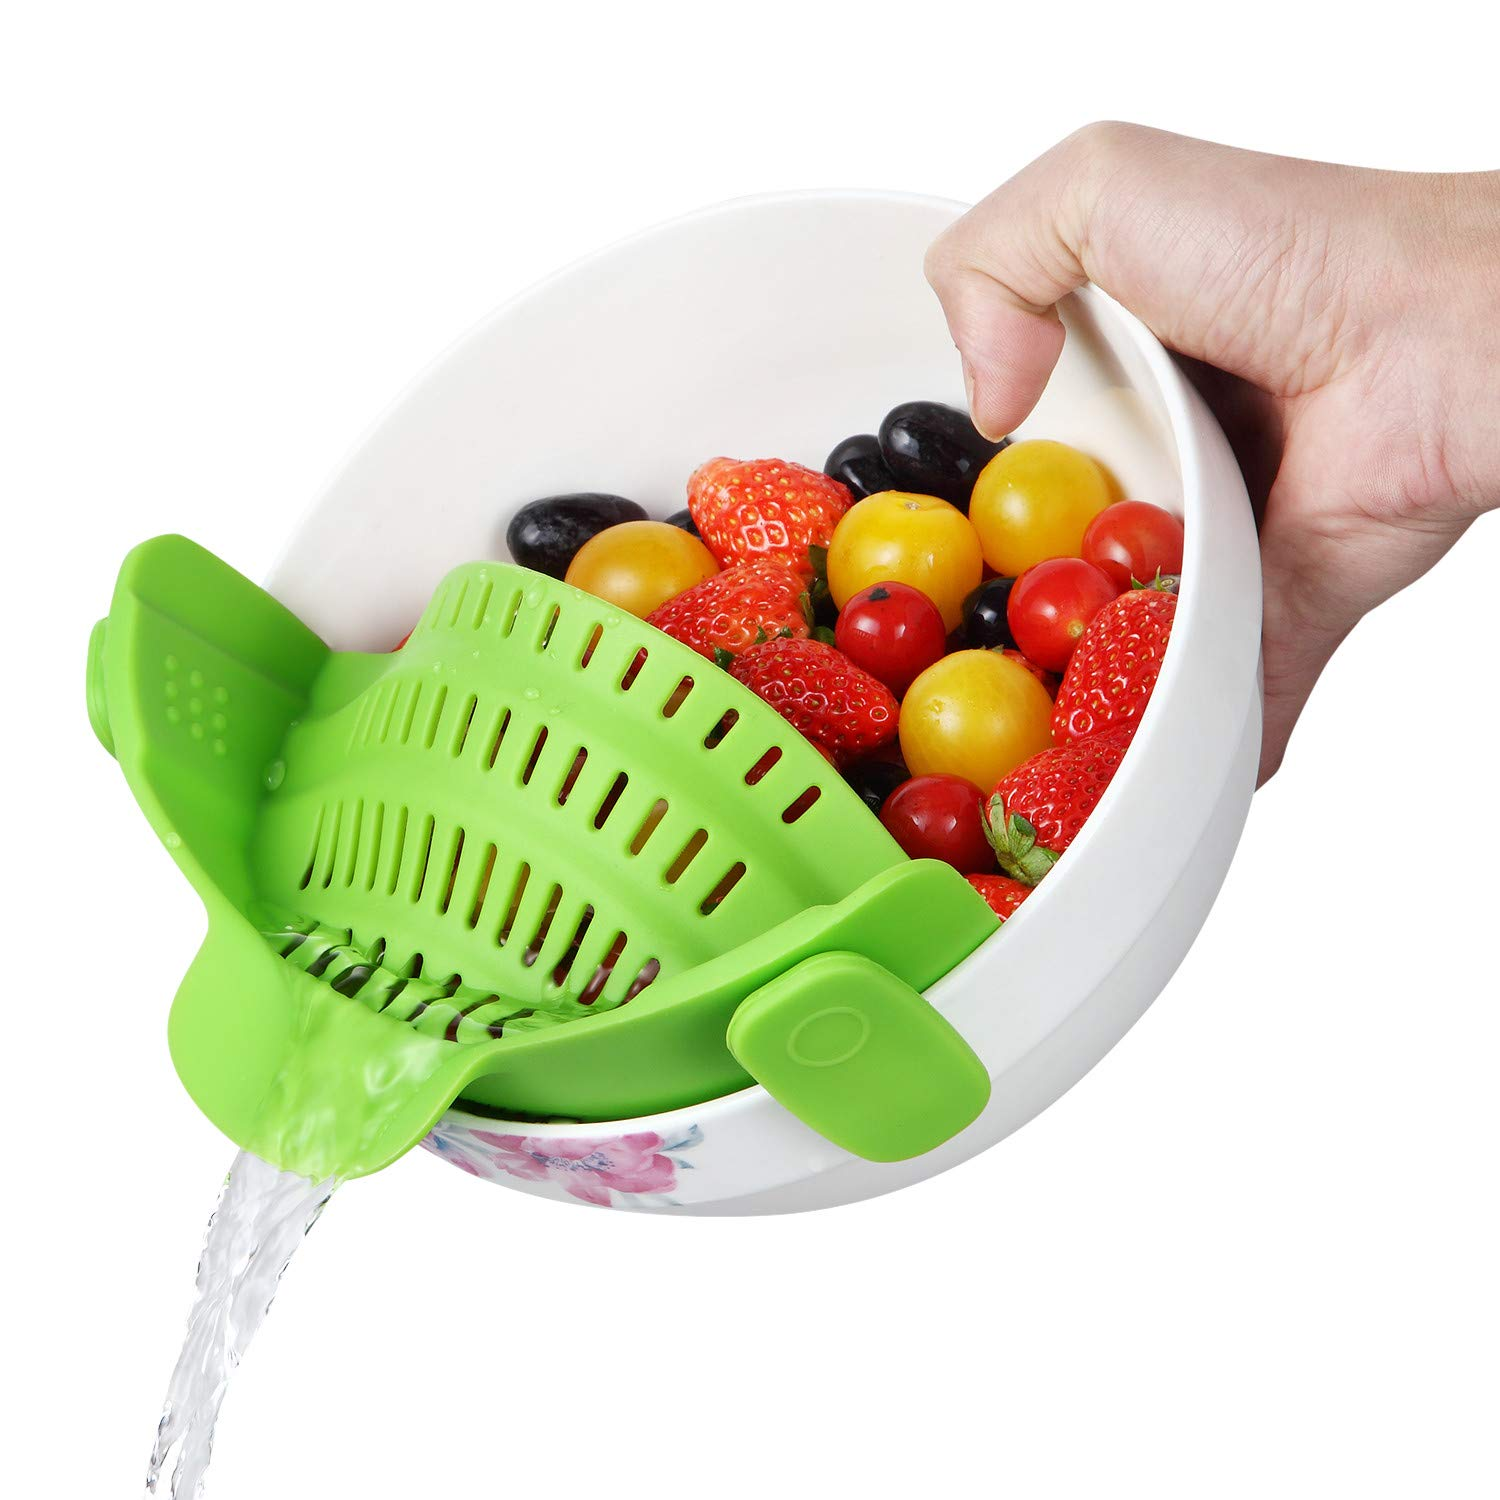 Byme Kitchen Food Strainers and Colanders Pasta Strainer Clip On Silicone Colander Fit all Pots and Bowls- Green